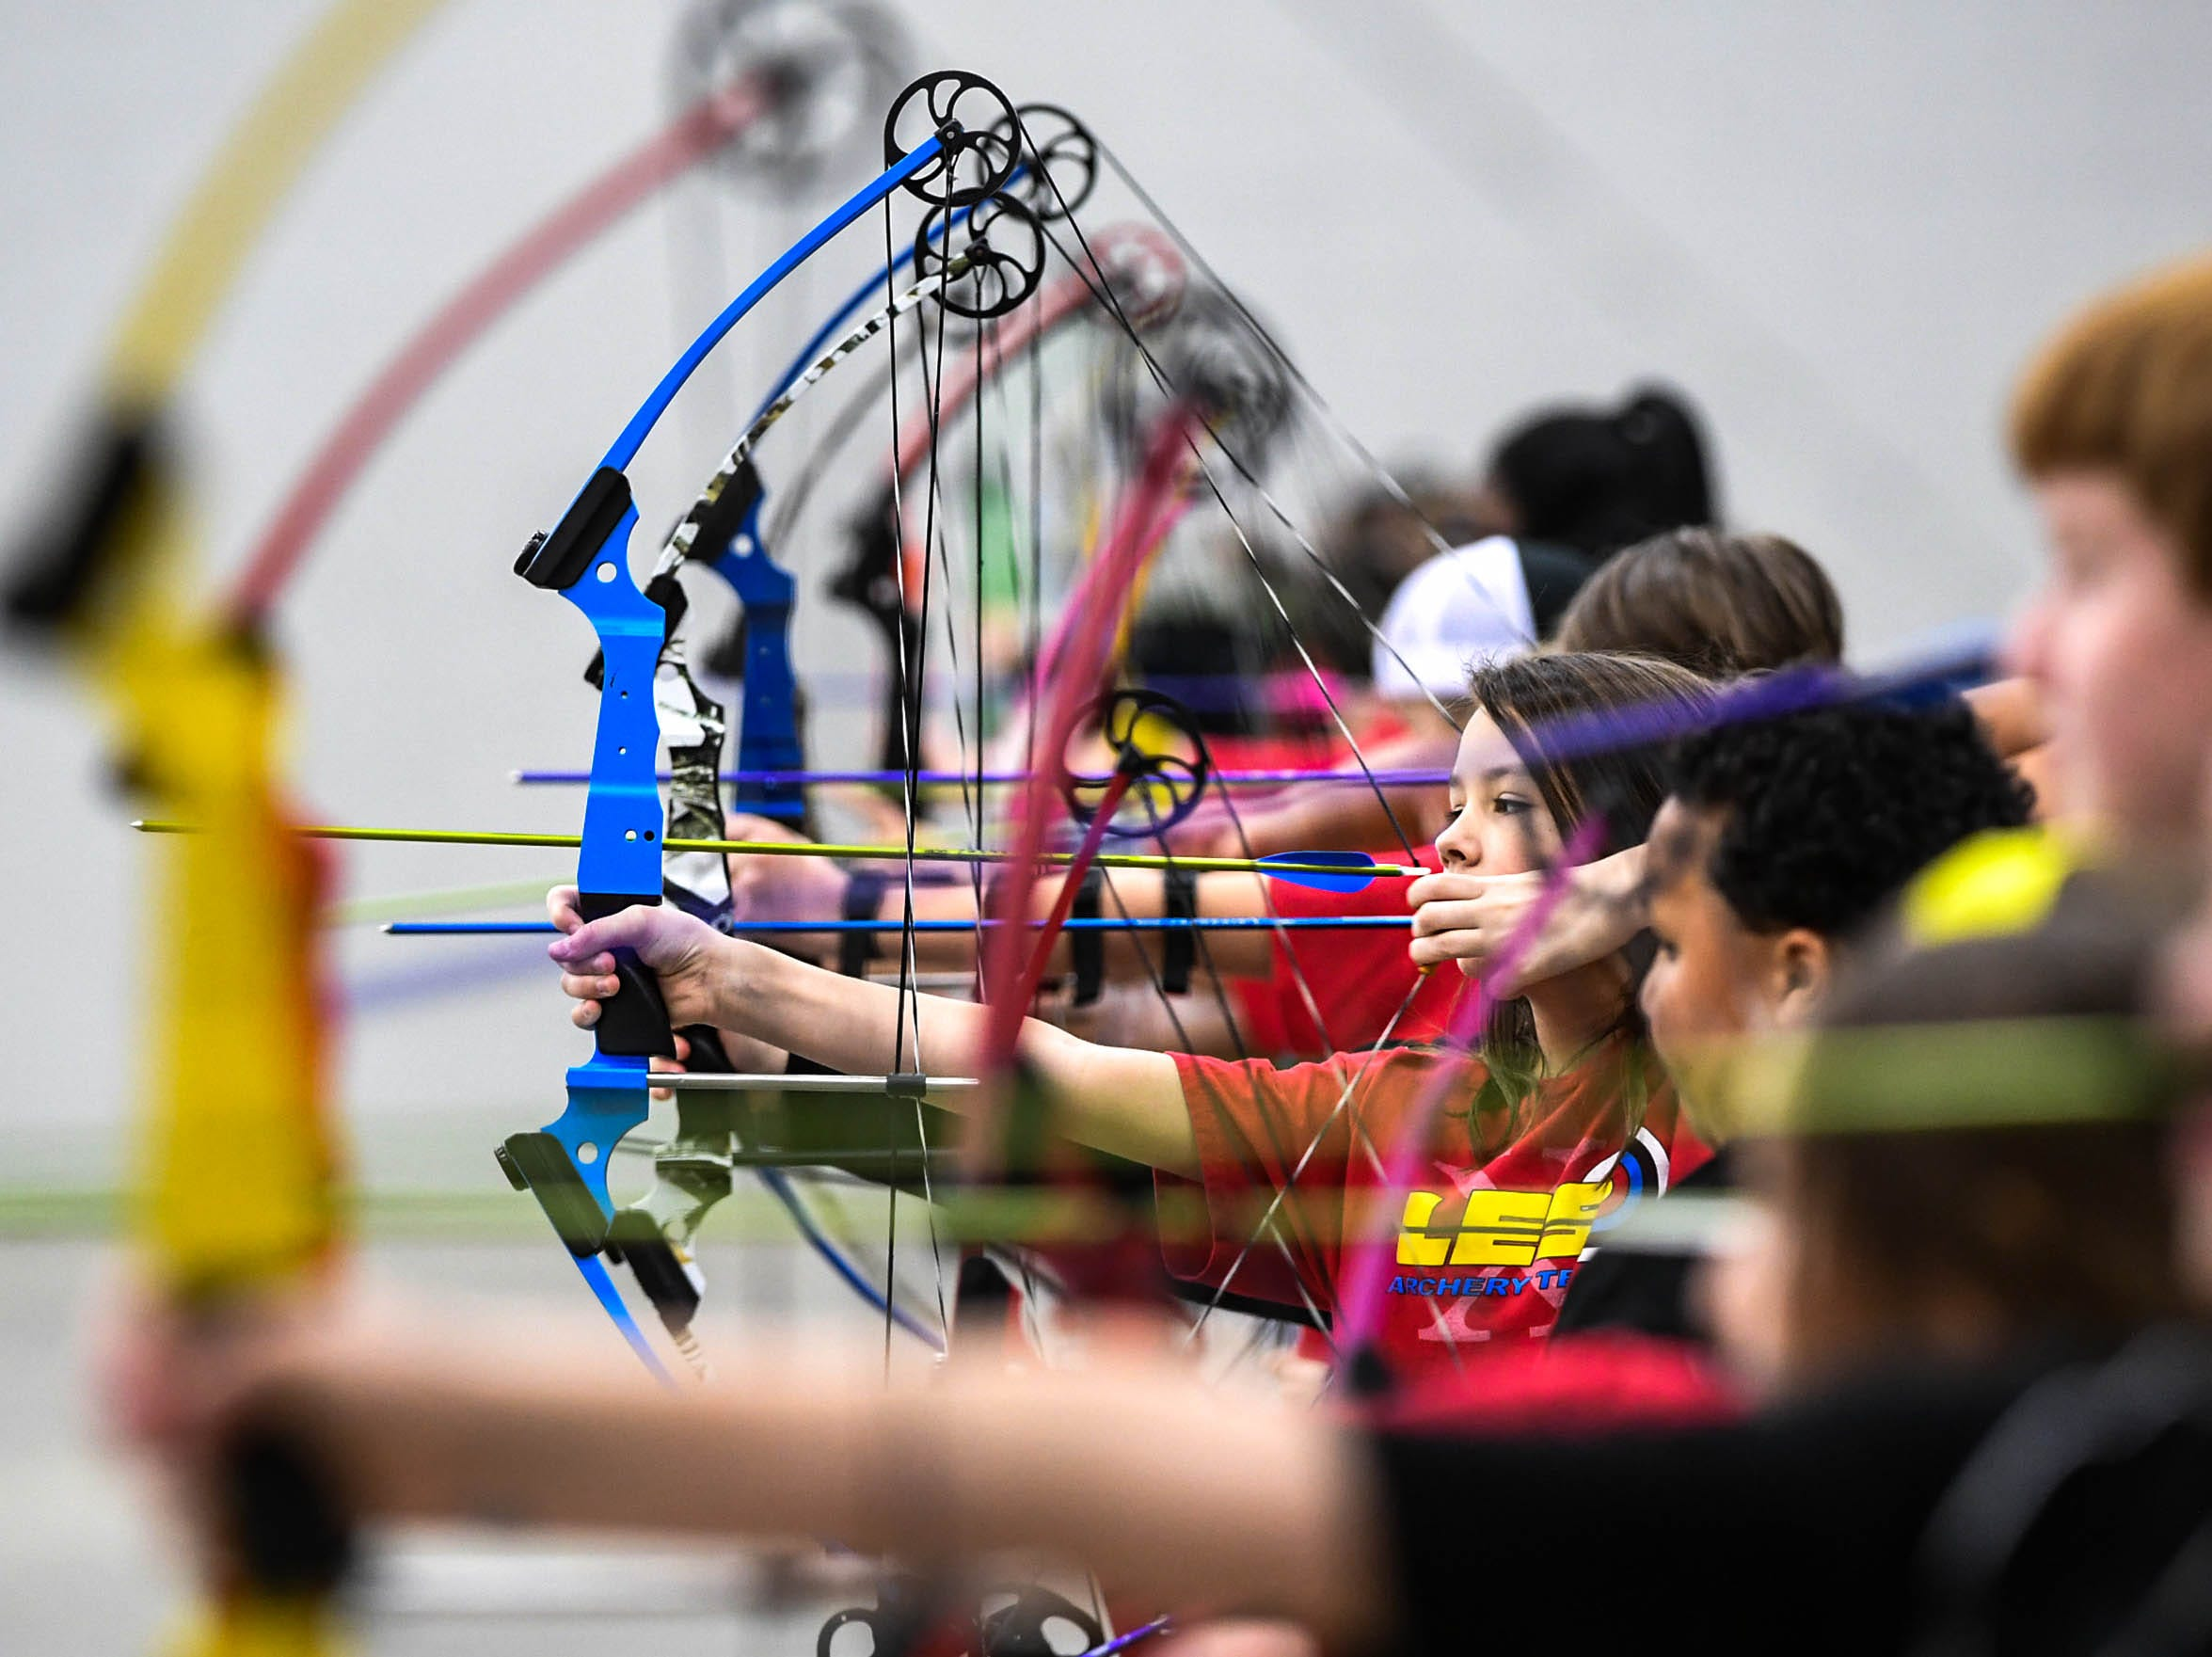 Jayda Masters, a fourth-grade LaFrace Elementary School (Anderson School District 4) student, gets ready to release an arrow during the South Carolina Department of Natural Resources regional National Archery in the Schools Program (NASP) regional competition at the Anderson Civic Center Wednesday.  The program, which awards $50,000 in scholarships to high school seniors, is a joint venture between state departments of Education and Wildlife. The competition in Anderson, leading up to the state finals March 26-28 in Sumter, had 950 children from 14 elementary and 23 high schools around the state. Pendelton High School finished first in the IBO competition and second in the bullseye for the high school division, Riverside Middle School in Pendleton finished first in the IBO and bullseye competitions for middle schools, and LaFrance Elementary team finished first.